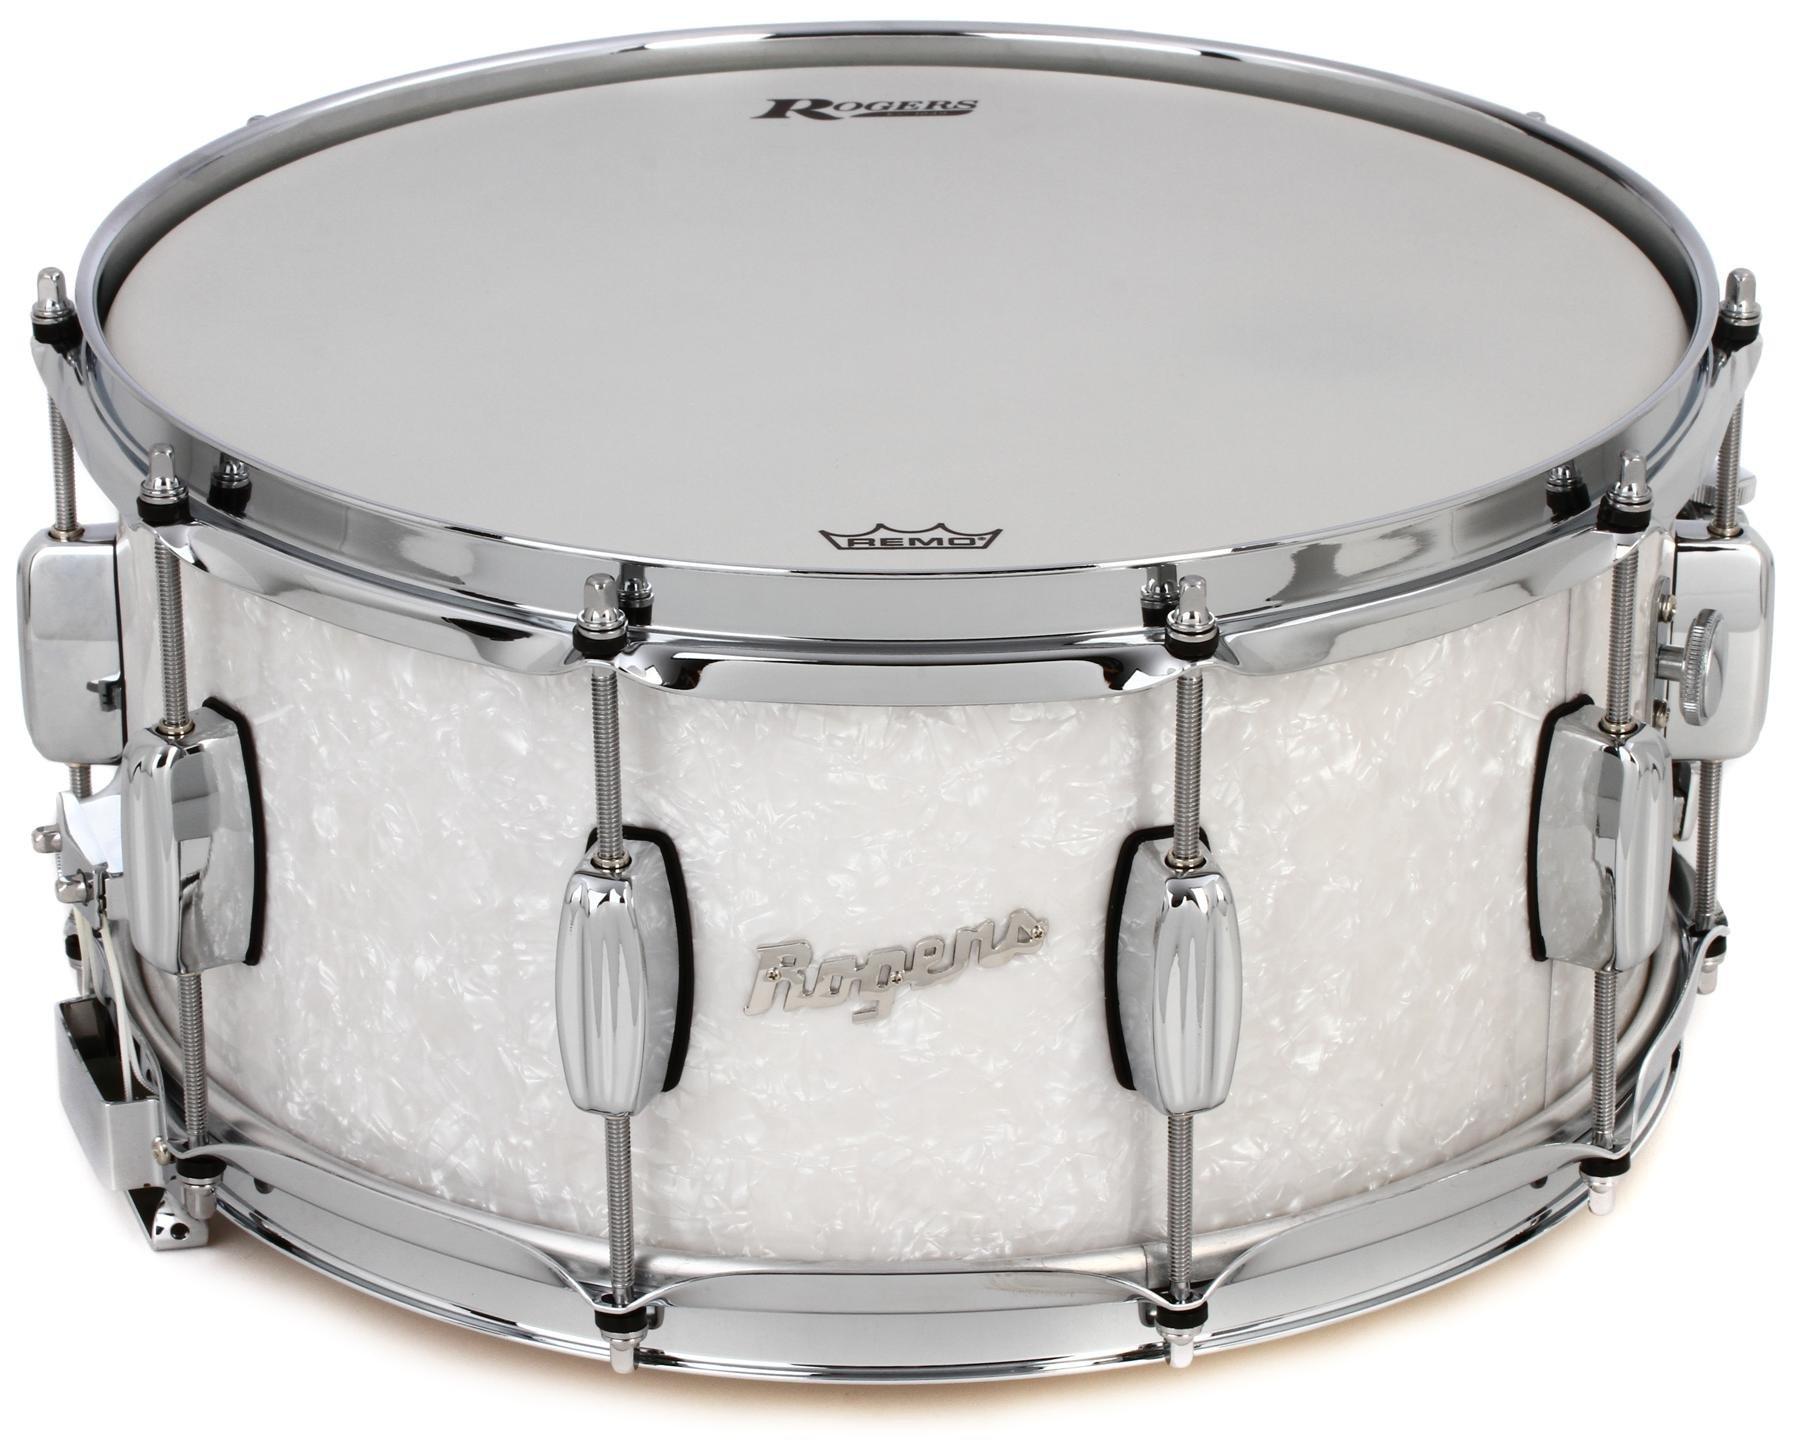 Rogers Drums Dyna-sonic Snare Drum - 6.5\